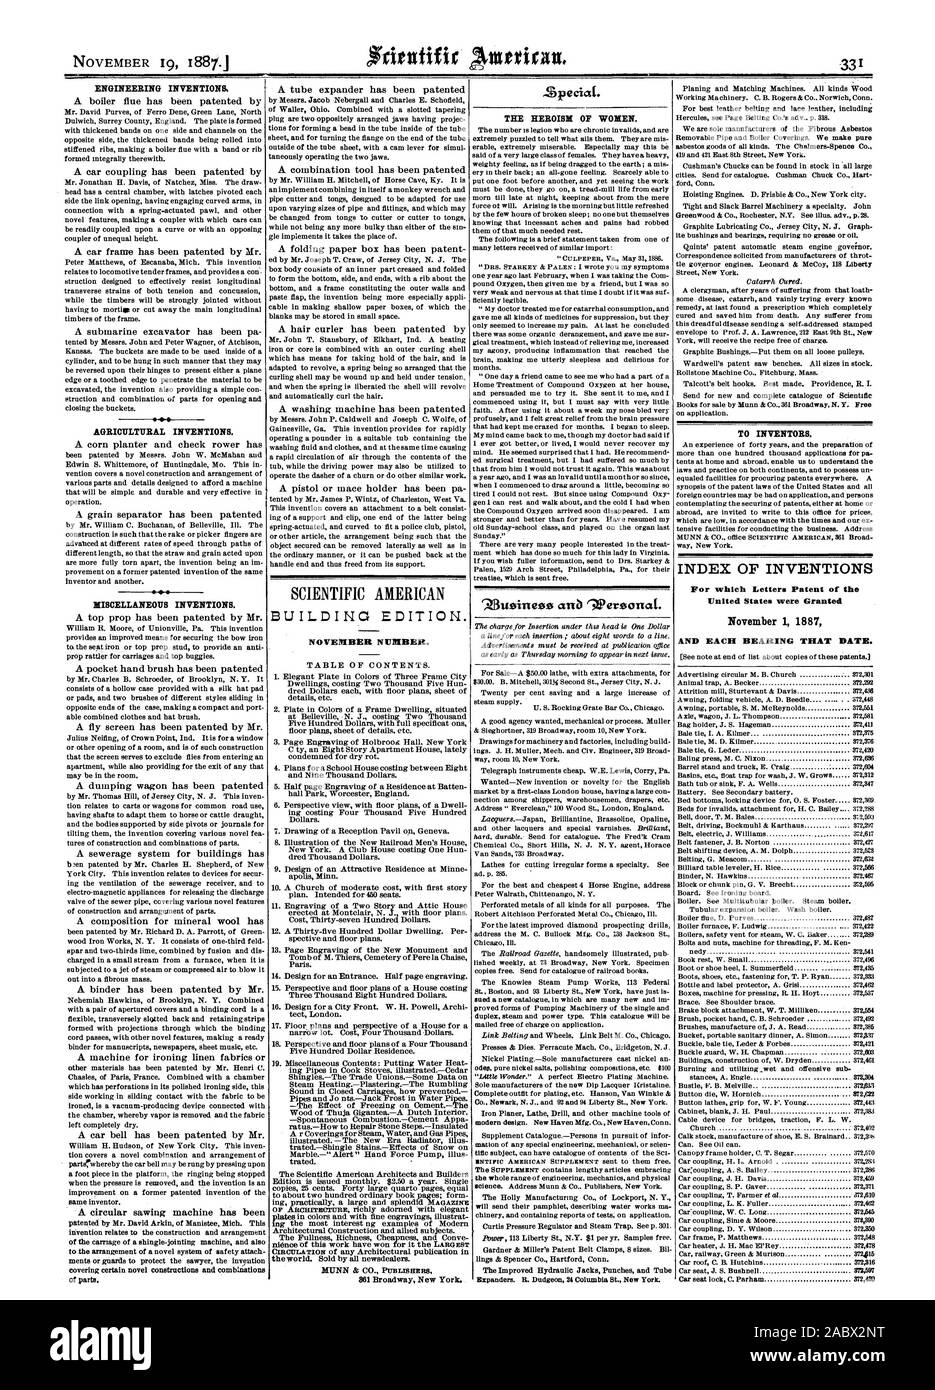 ENGINEERING INVENTIONS AGRICULTURAL INVENTIONS. MISCELLANEOUS INVENTIONS. BUILDING EDITION. NOVEMBER NUMBER. Zpeciat. THE HEROISM OF WOMEN. TO INVENTORS. INDEX OF INVENTIONS For which Letters Patent of the United States were Granted November 1 1887 AND EACH BEARING THAT DATE., scientific american, 1887-11-19 Stock Photo